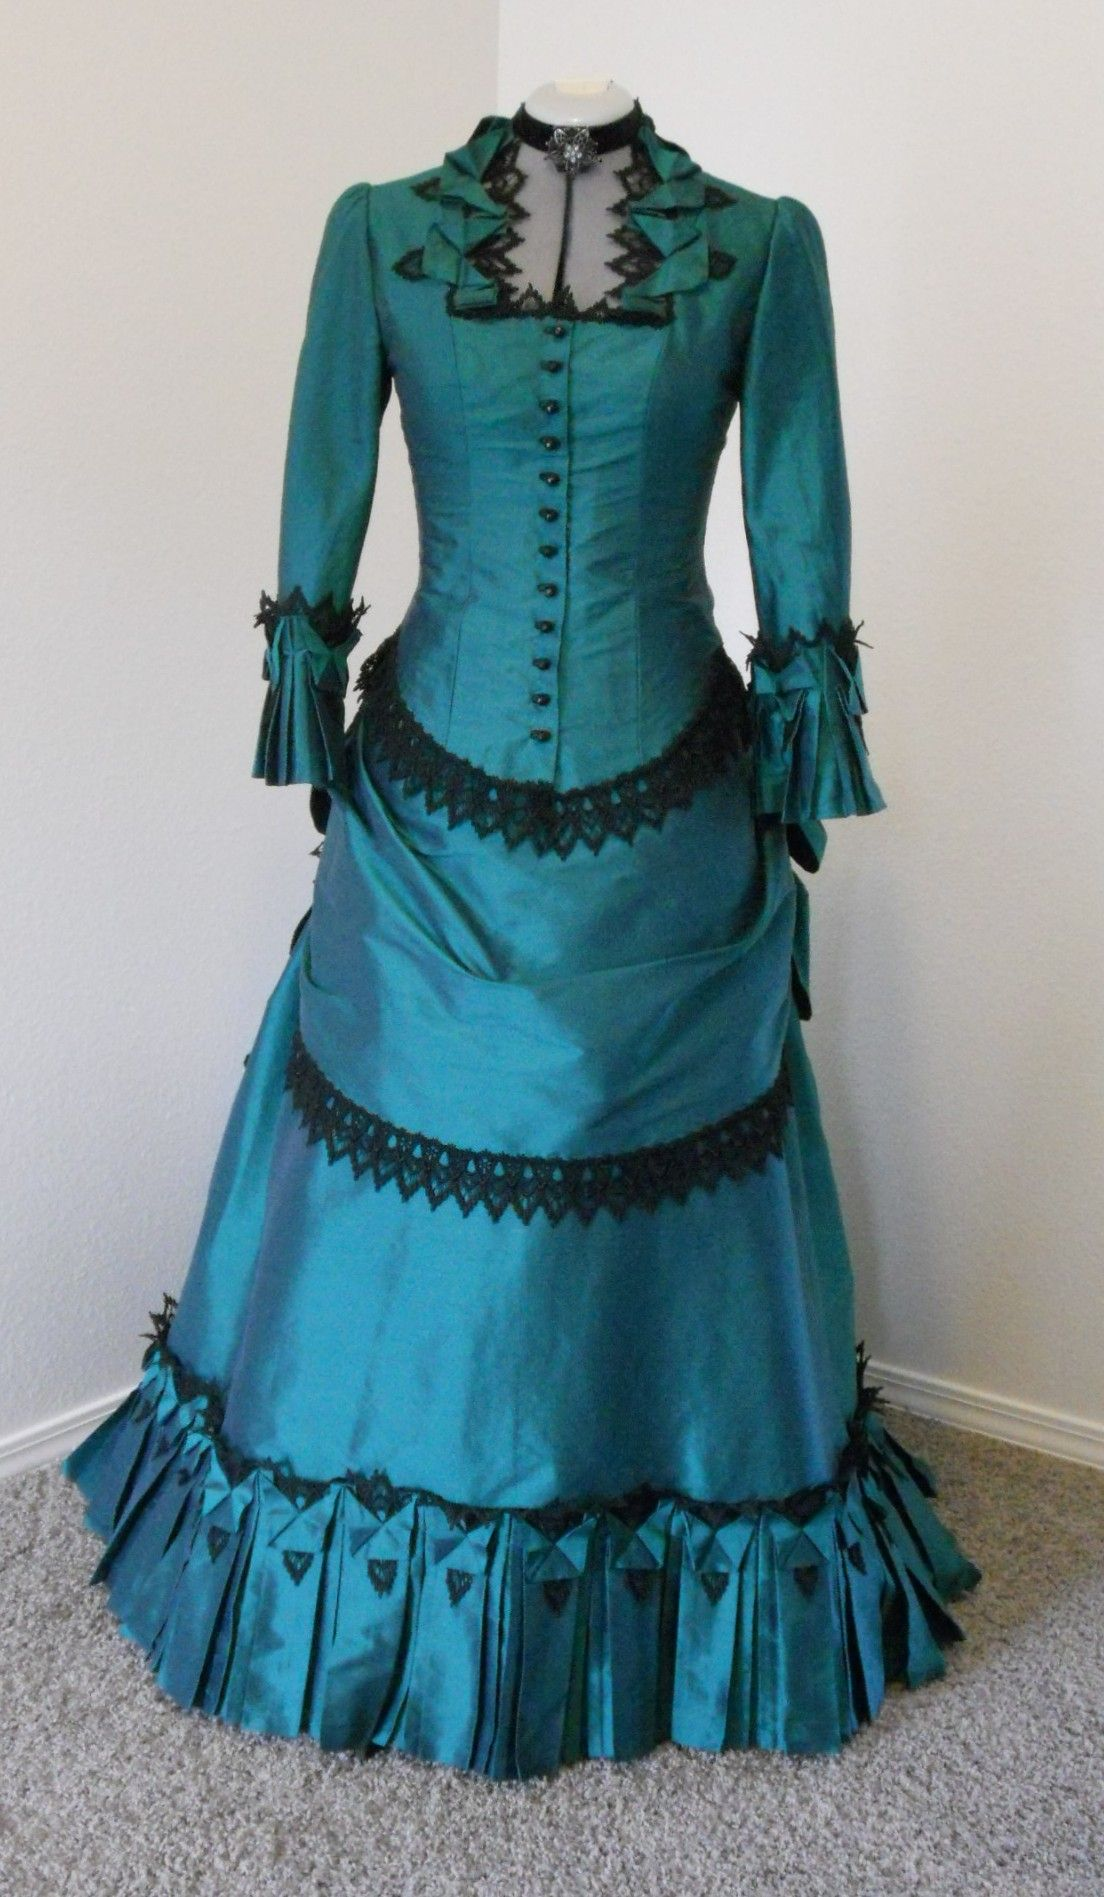 c6f23aa6b9 Love the lace on this 1880s Bustle Victorian style dress by Sally C  Designs. Also